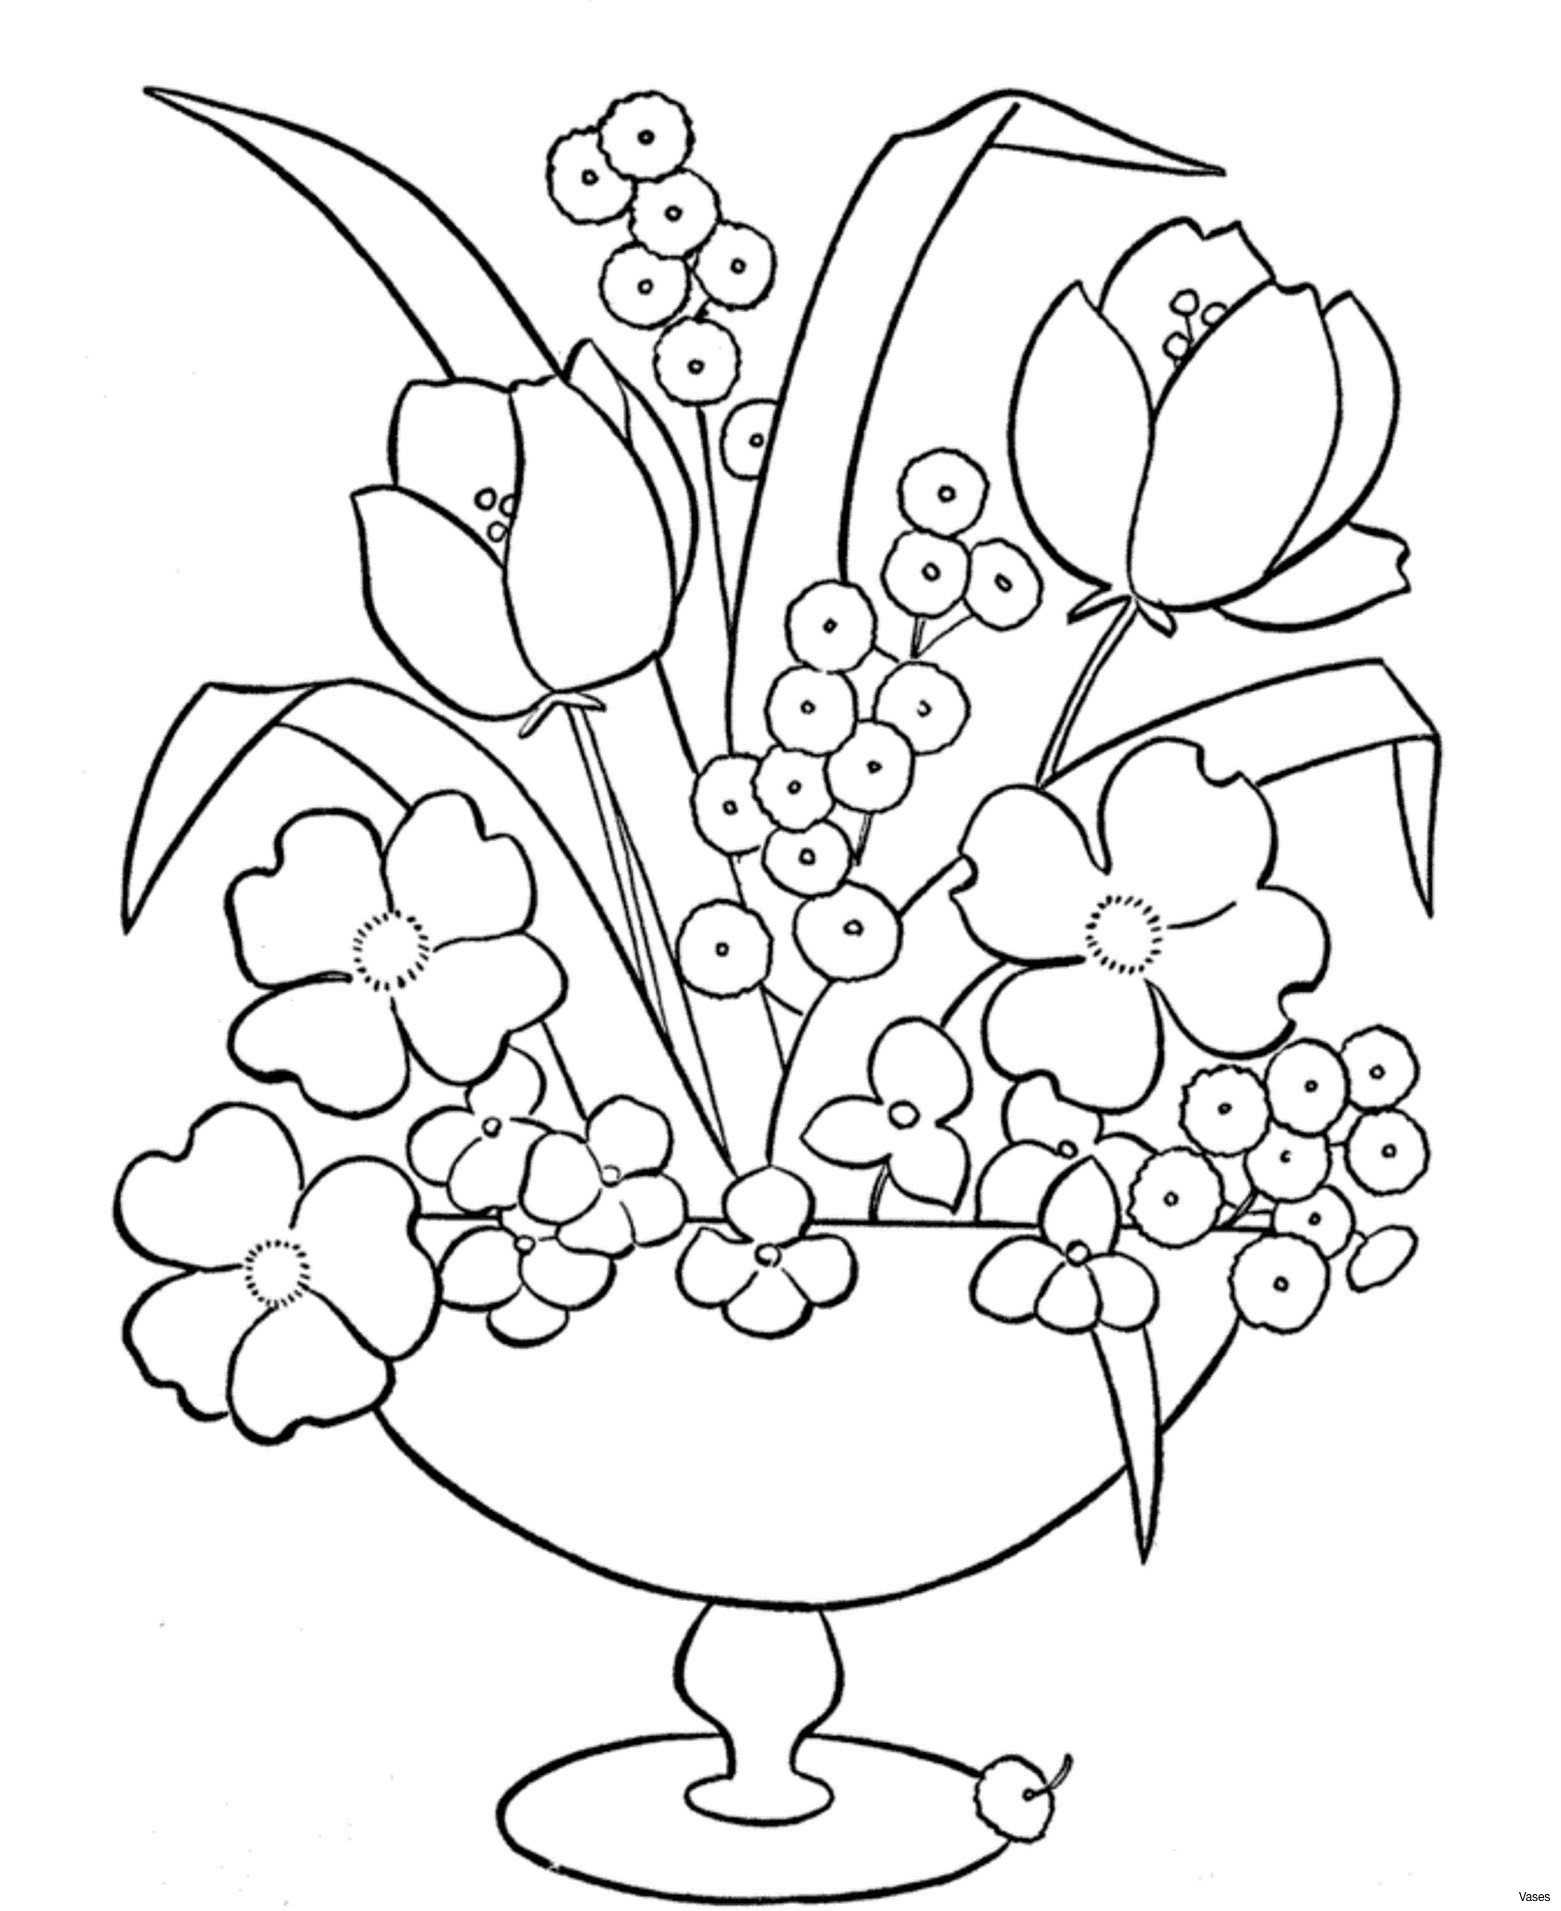 Flowers In Vase Art Of Dolphin Coloring Page Cool Vases Flower Vase Coloring Page Pages Regarding Dolphin Coloring Page Cool Vases Flower Vase Coloring Page Pages Flowers In A top I 0d Ruva